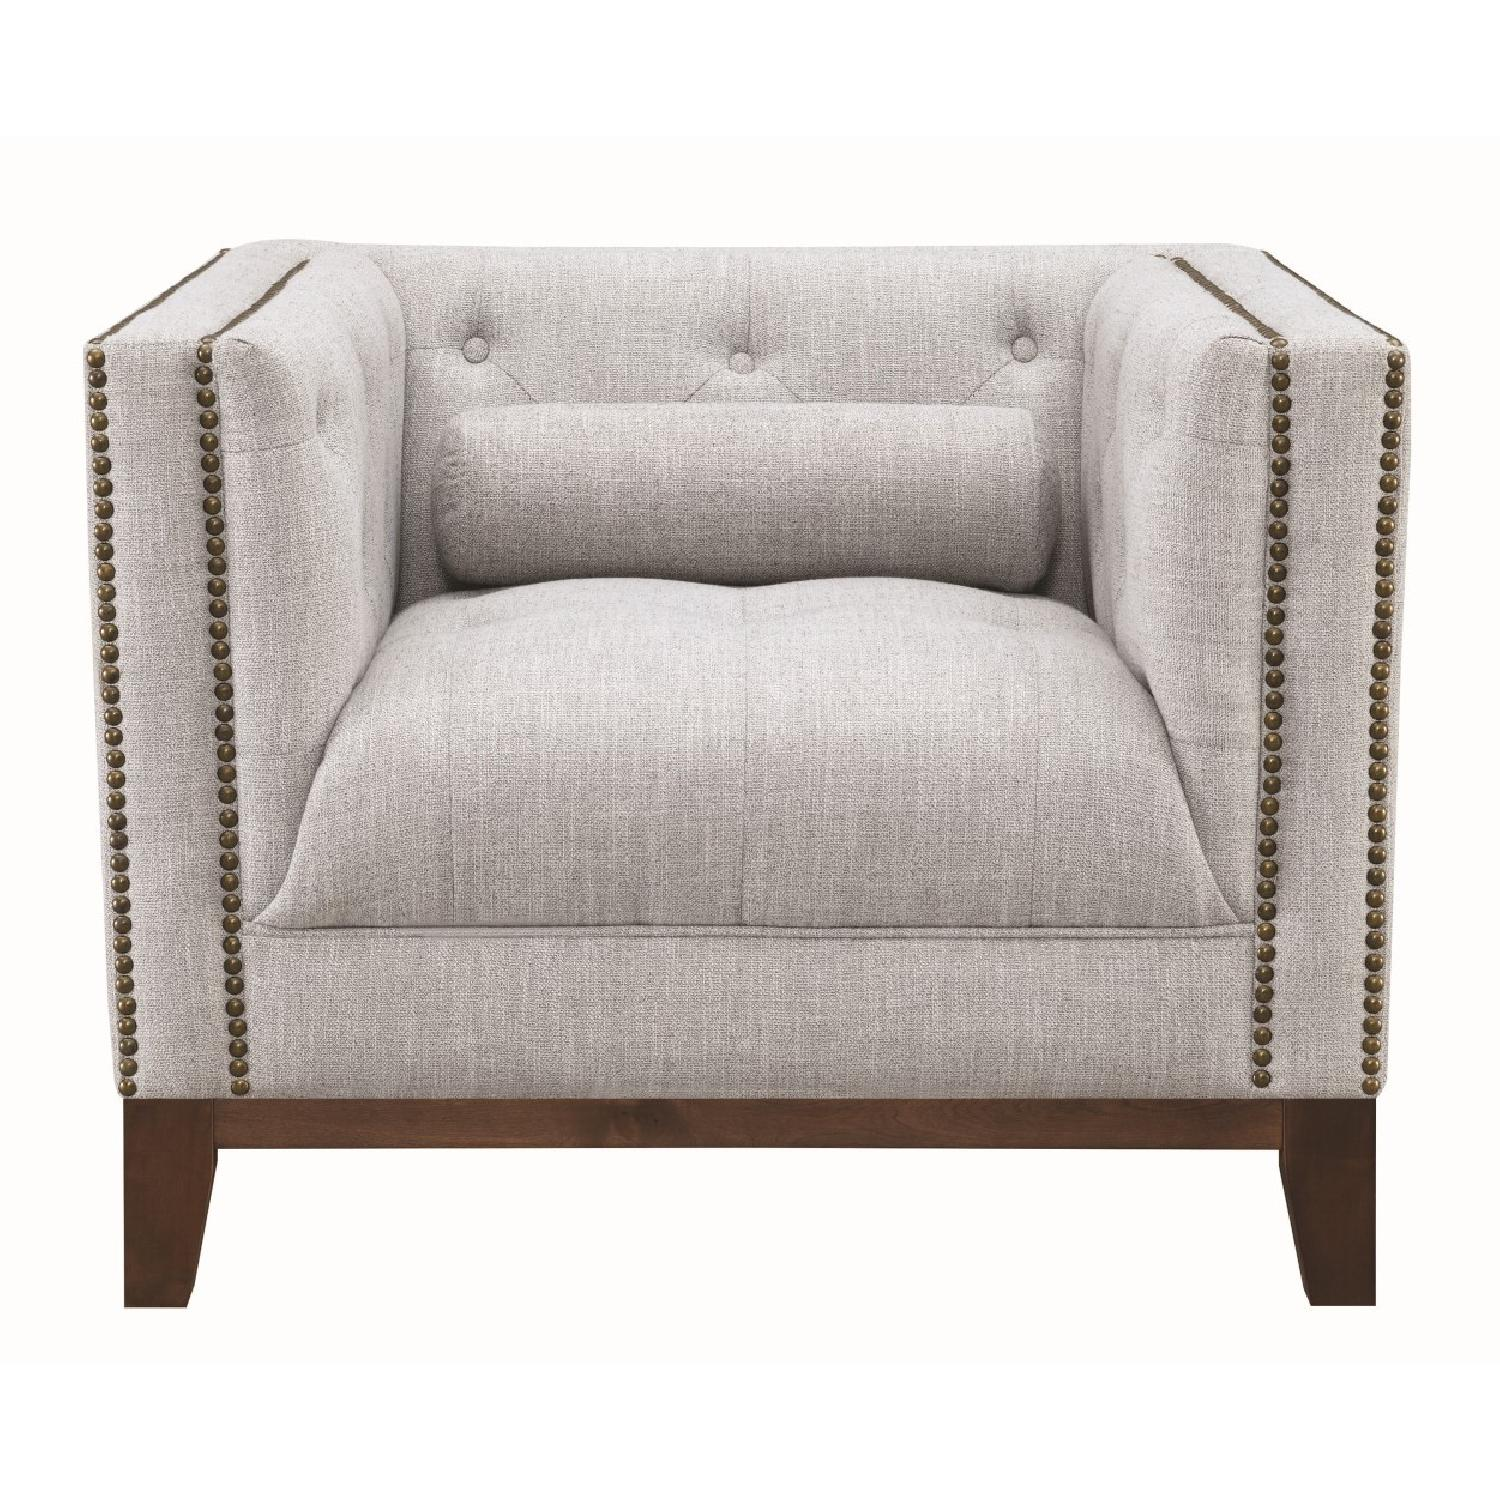 Modern Style Armchair w/ Tufted Buttons & Nailhead Accent - image-5